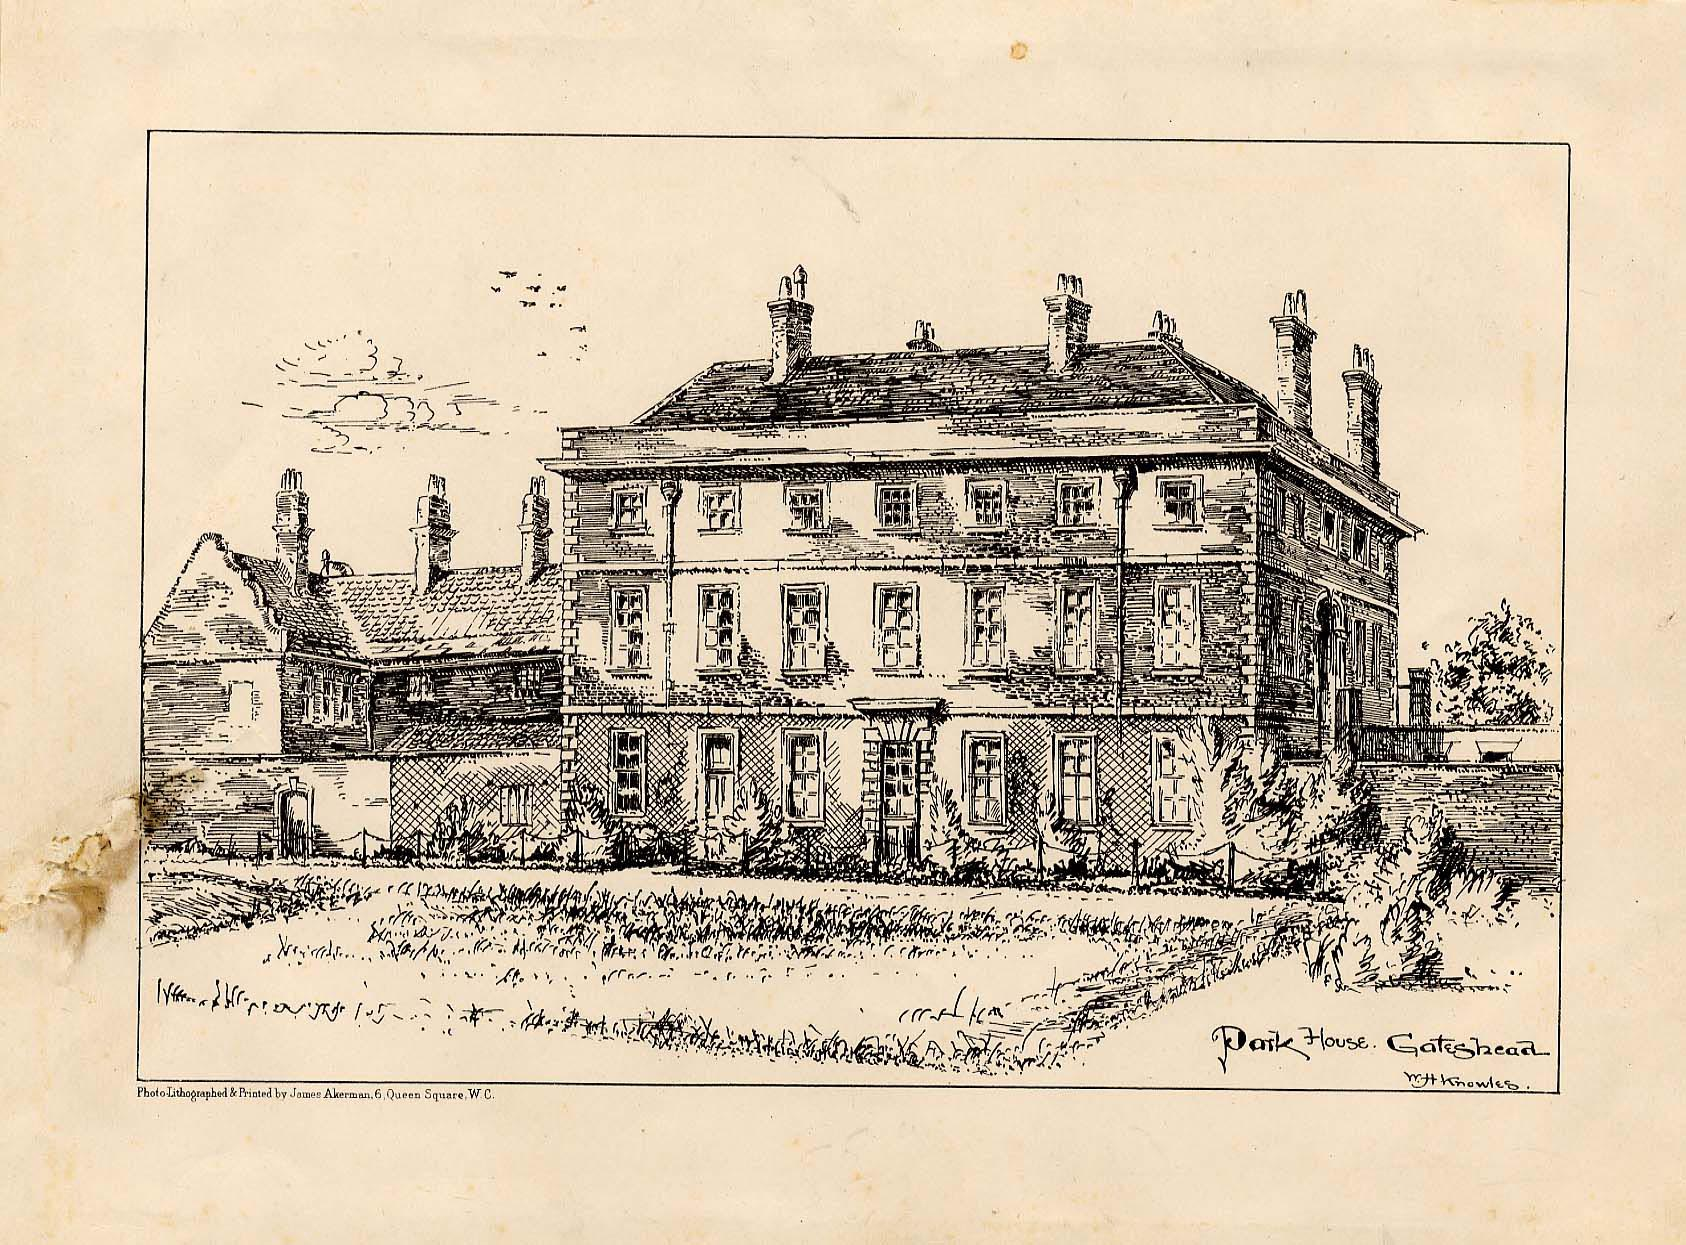 Park House, Gateshead. From a drawing by W H Knowles